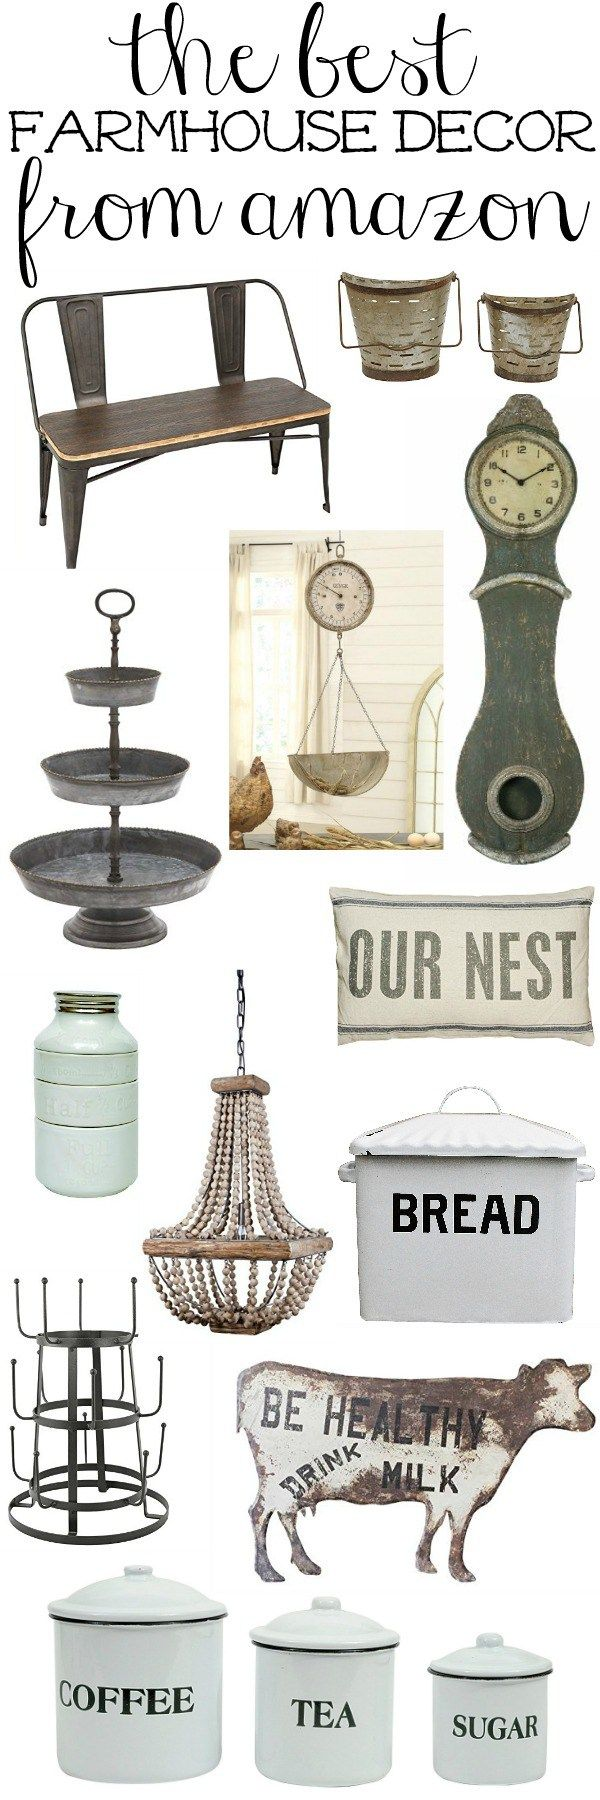 The best farmhouse decor from amazon now you can find amazing farmhouse decor pieces on amazon get them delivered right to your door step in two days